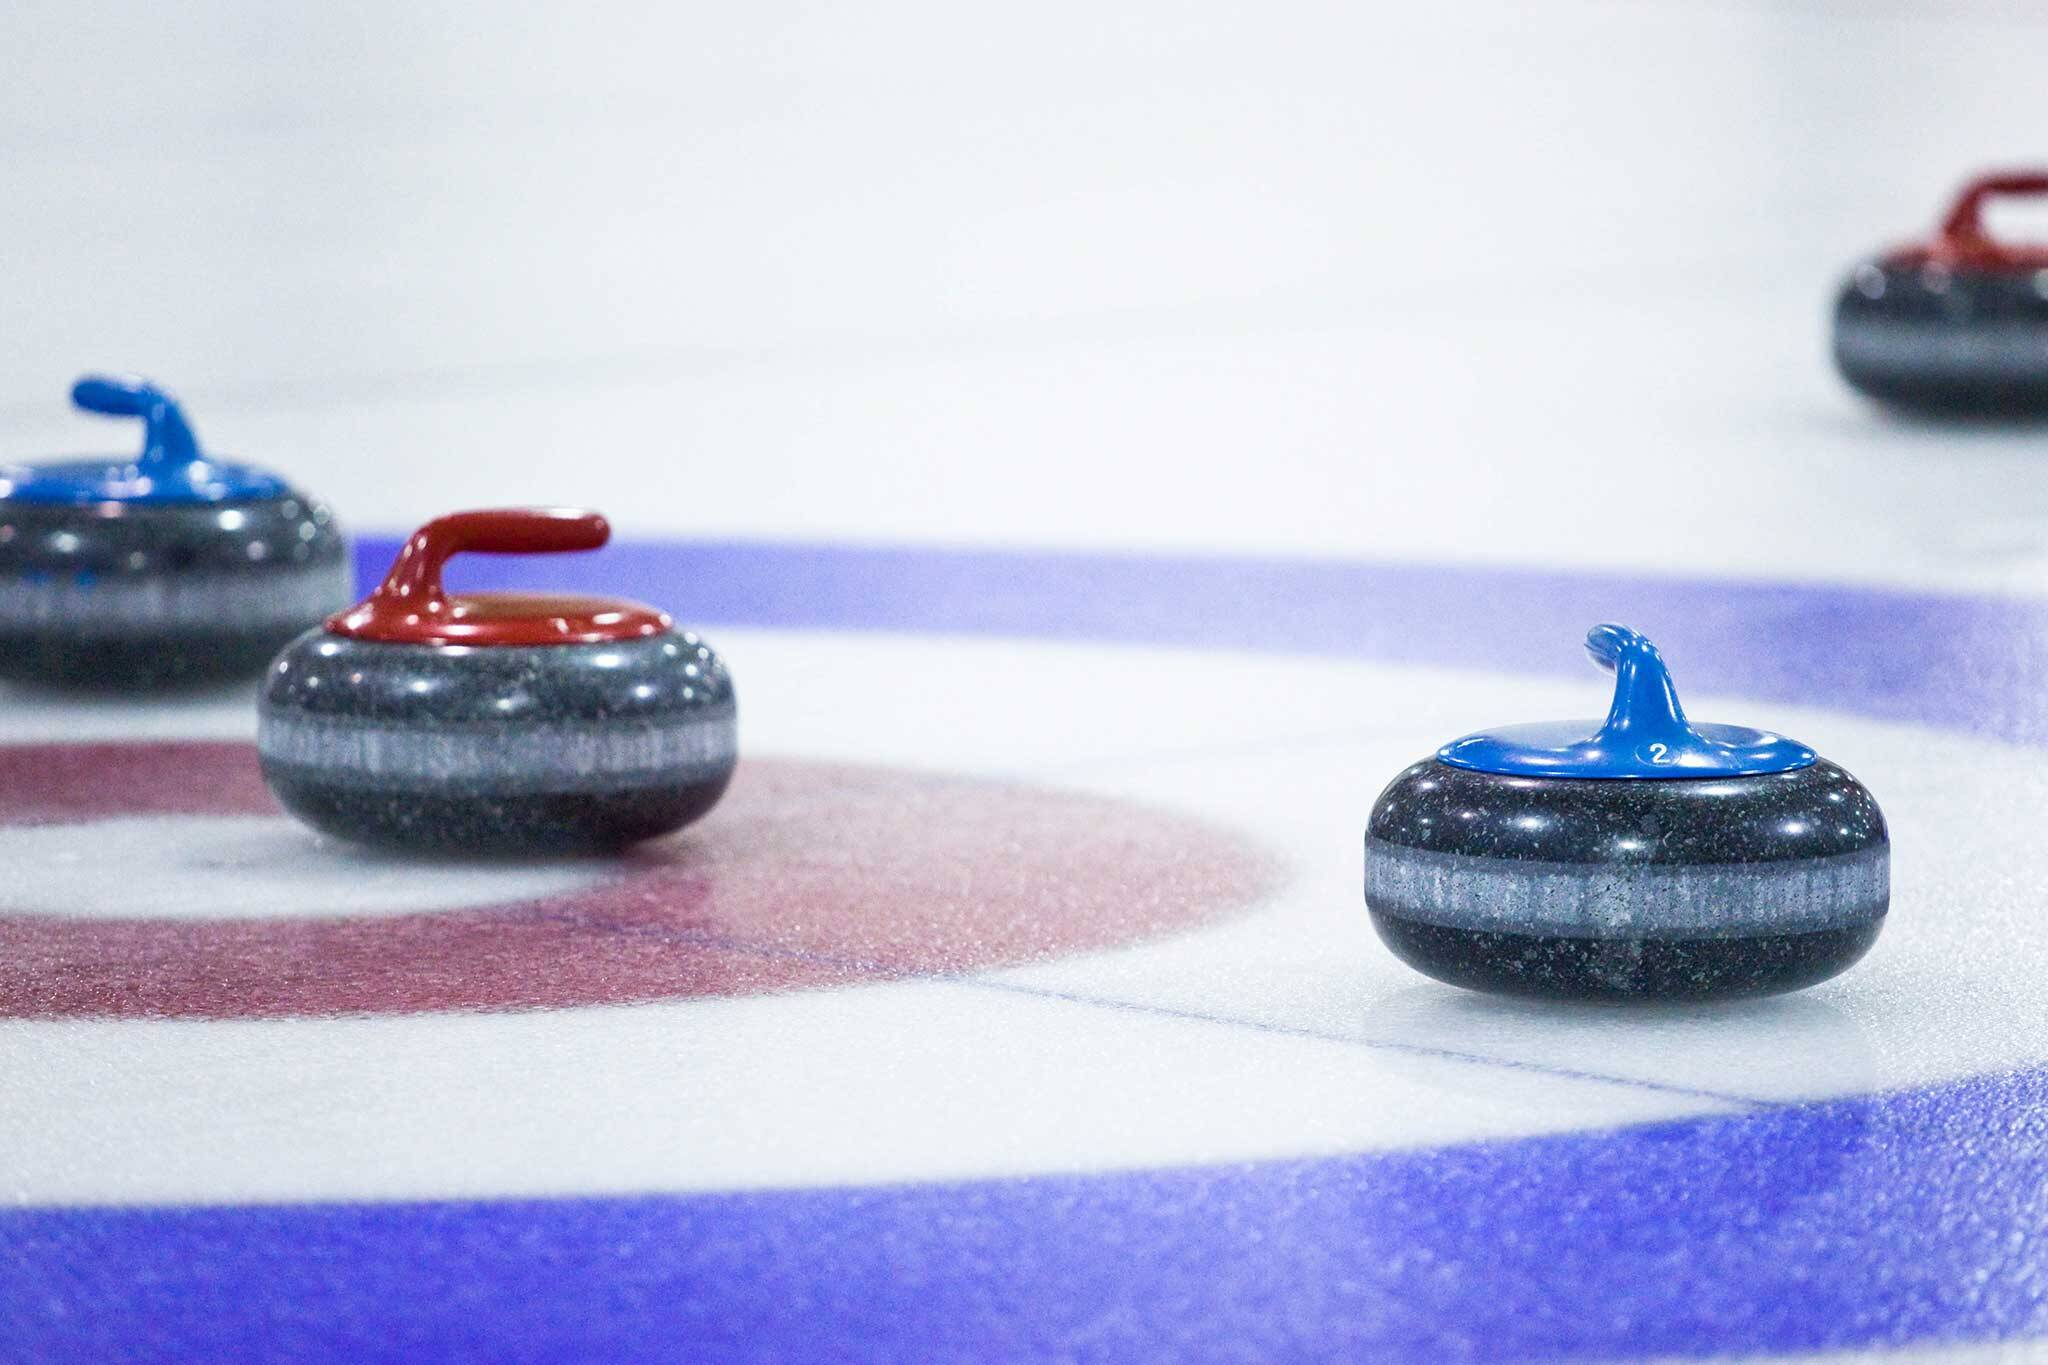 THE NEW CANADIAN CURLING CLUB Opens Festival's 44th Season ...